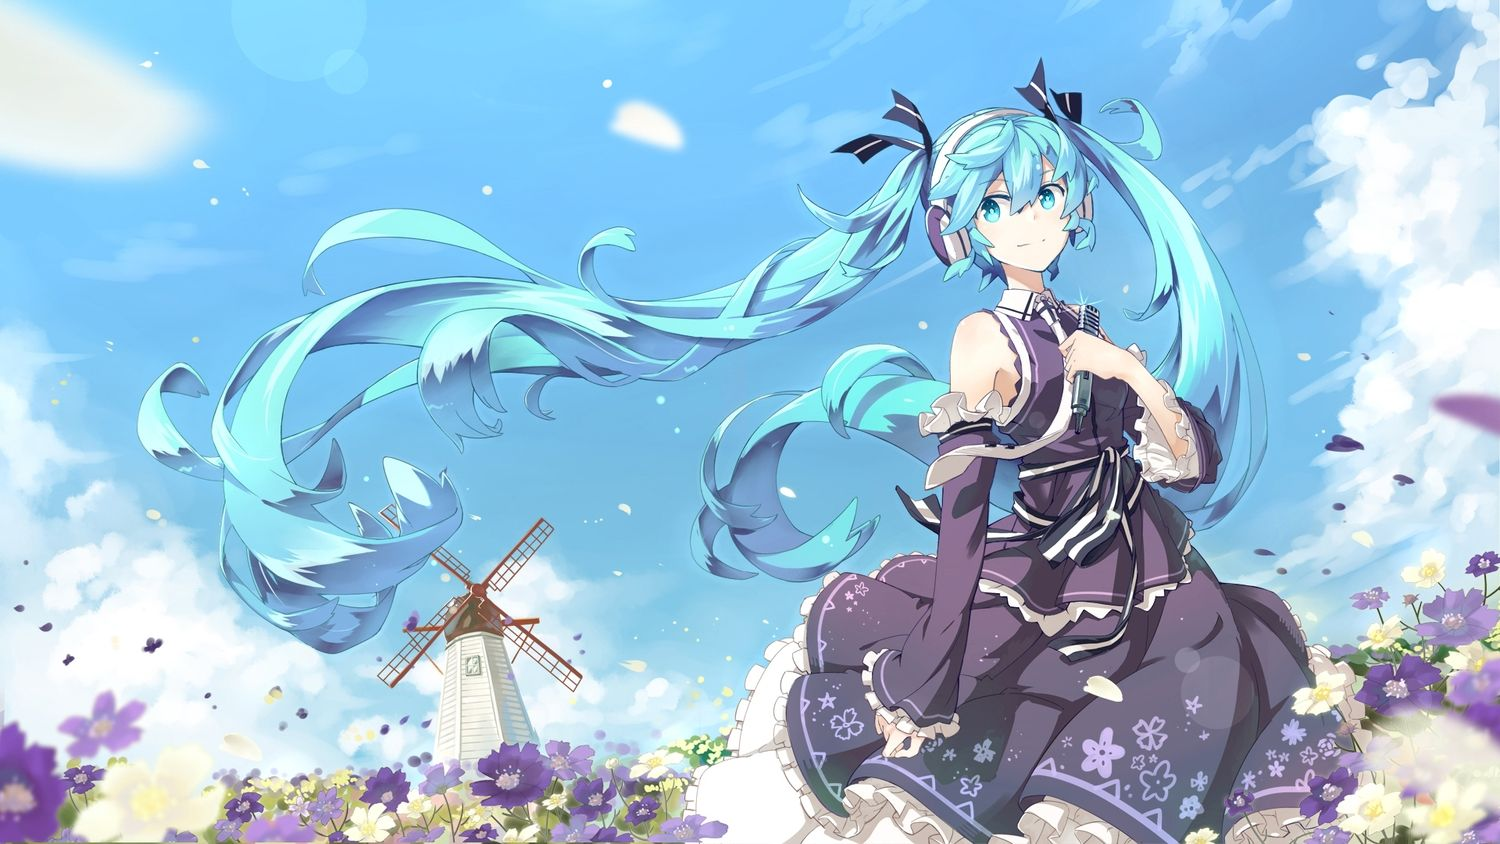 aqua eyes aqua hair flowers hatsune miku headphones lf